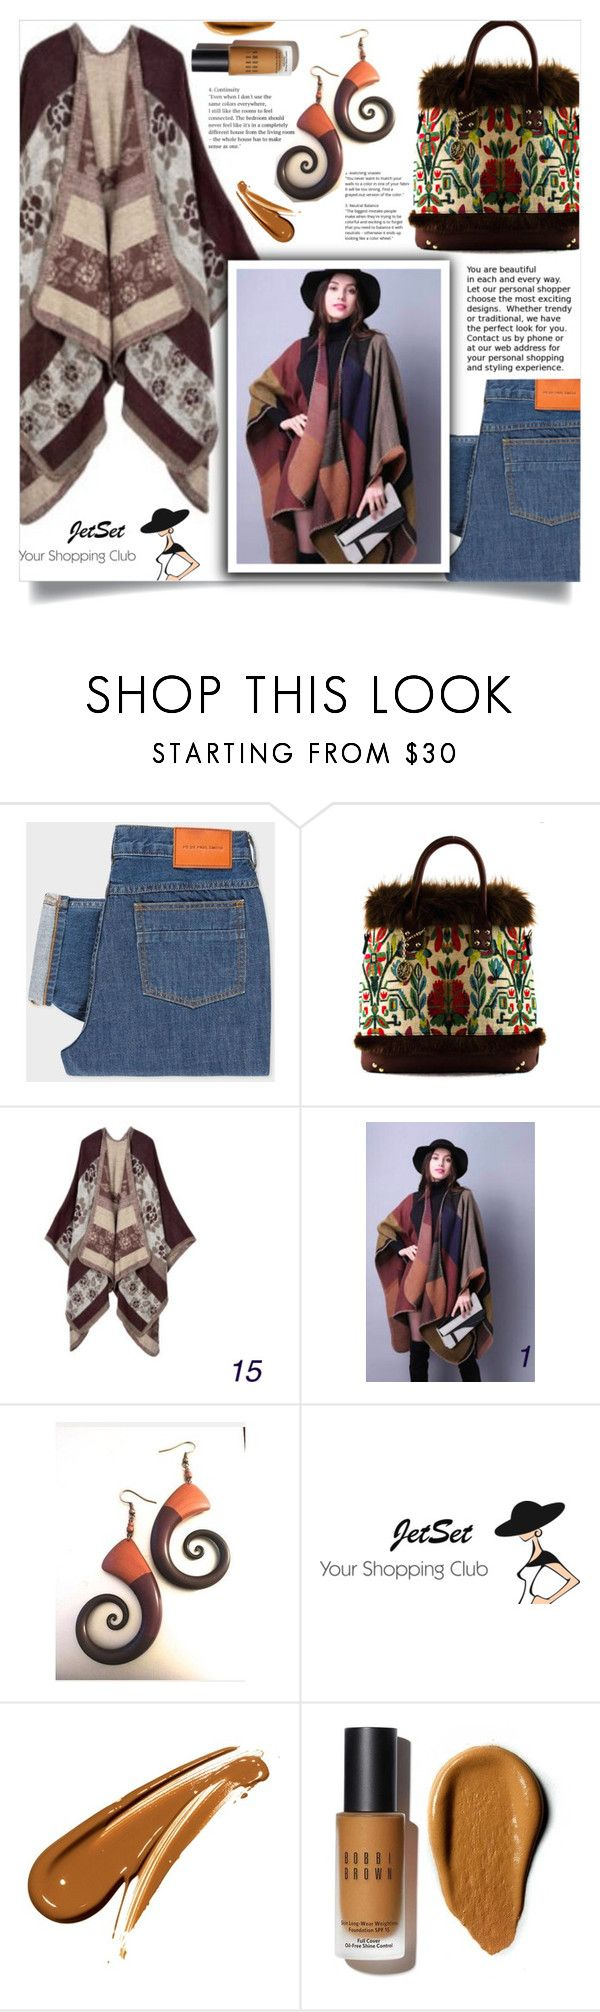 """""""JetSet shop!"""" by samra-bv ❤ liked on Polyvore featuring PS Paul Smith, Carbotti, Bobbi Brown Cosmetics, Fall, Winter, bag and autumn"""